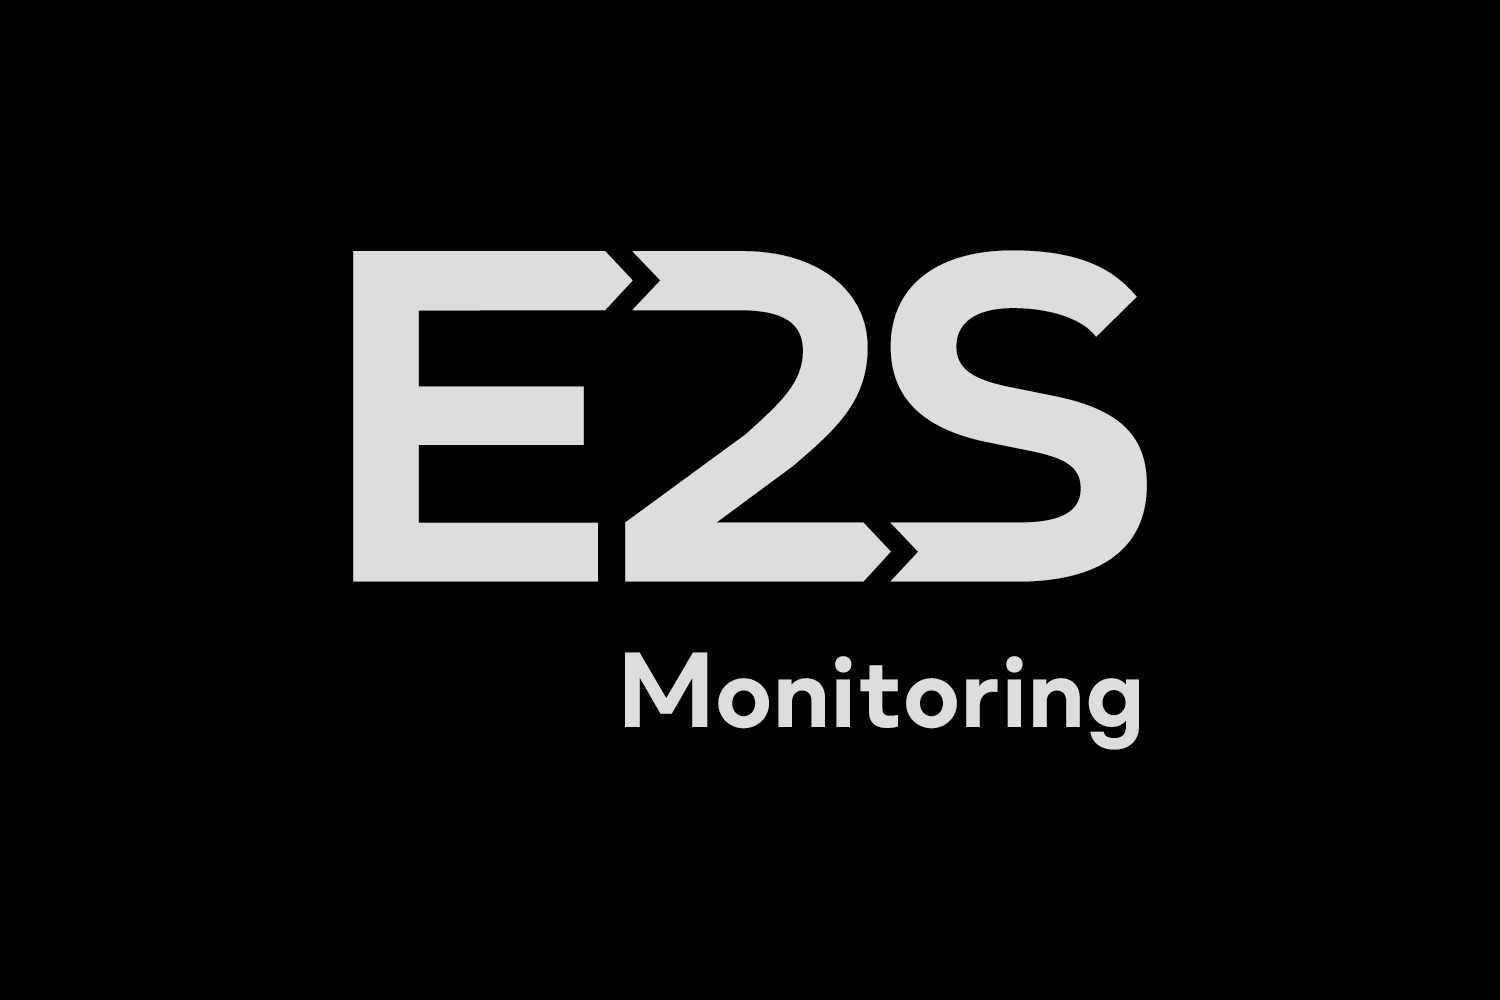 2point3 E2S Monitoring